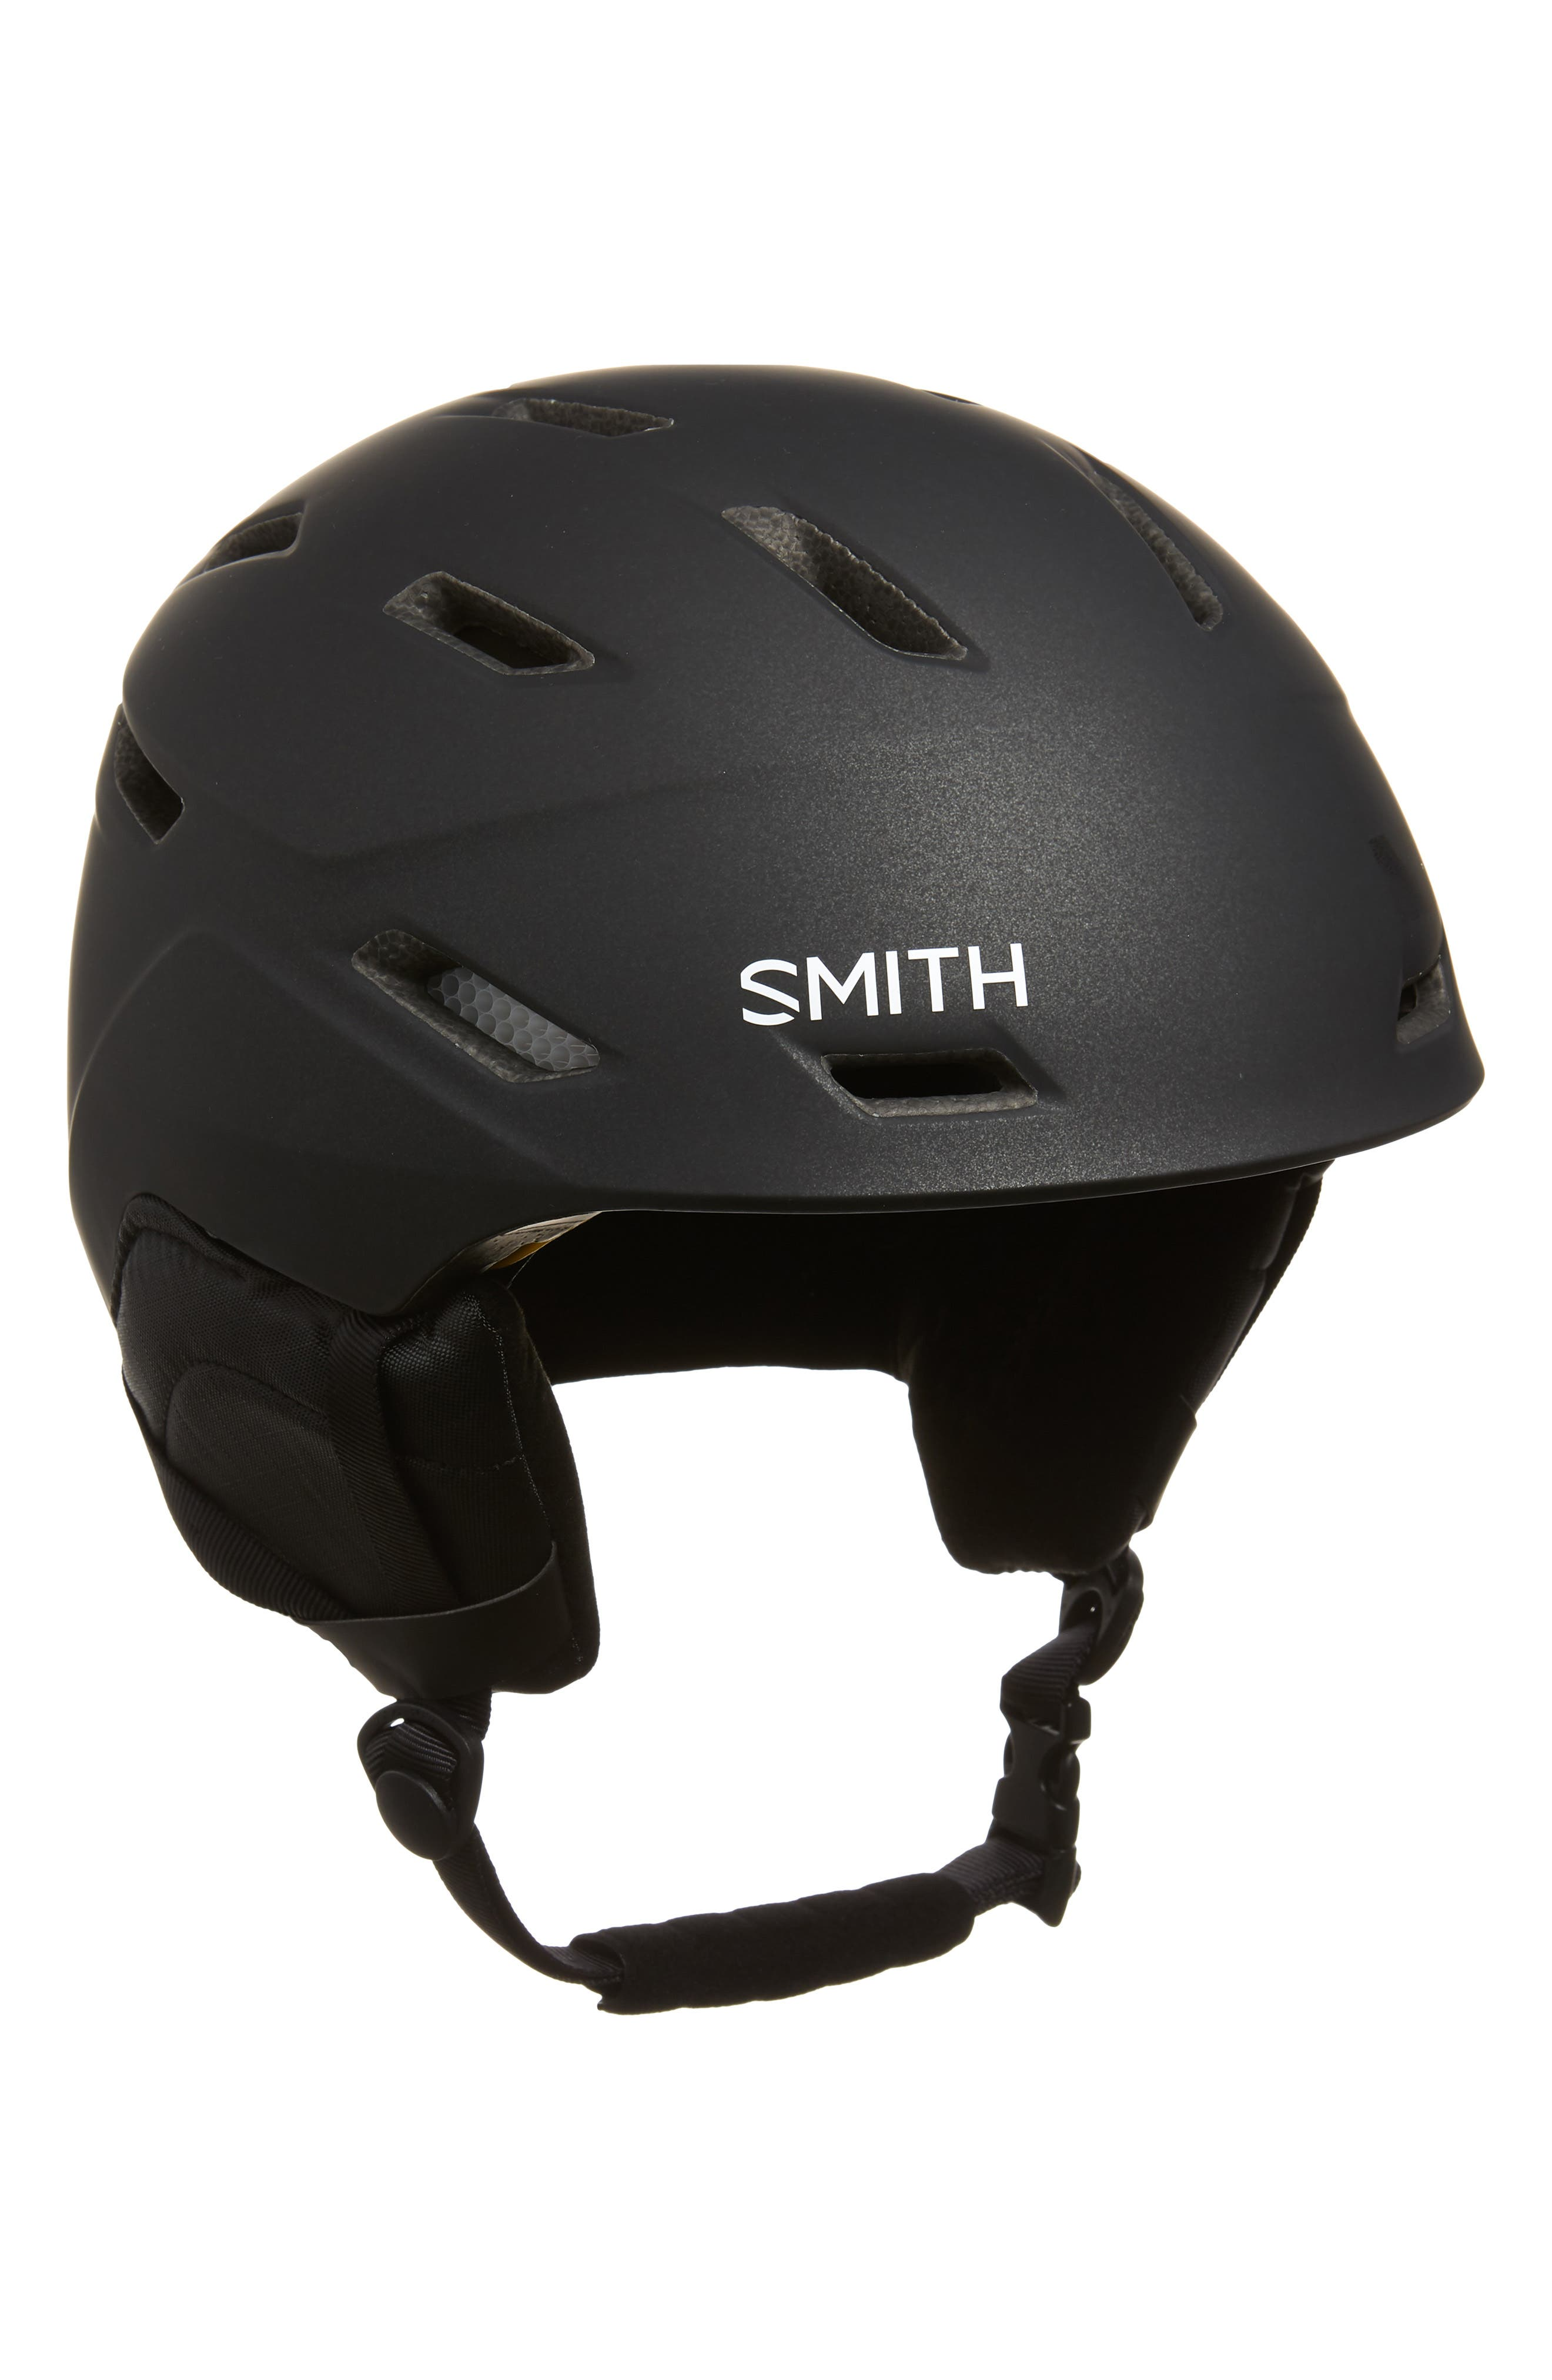 Smith MIRAGE WITH MIPS SNOW HELMET - BLACK